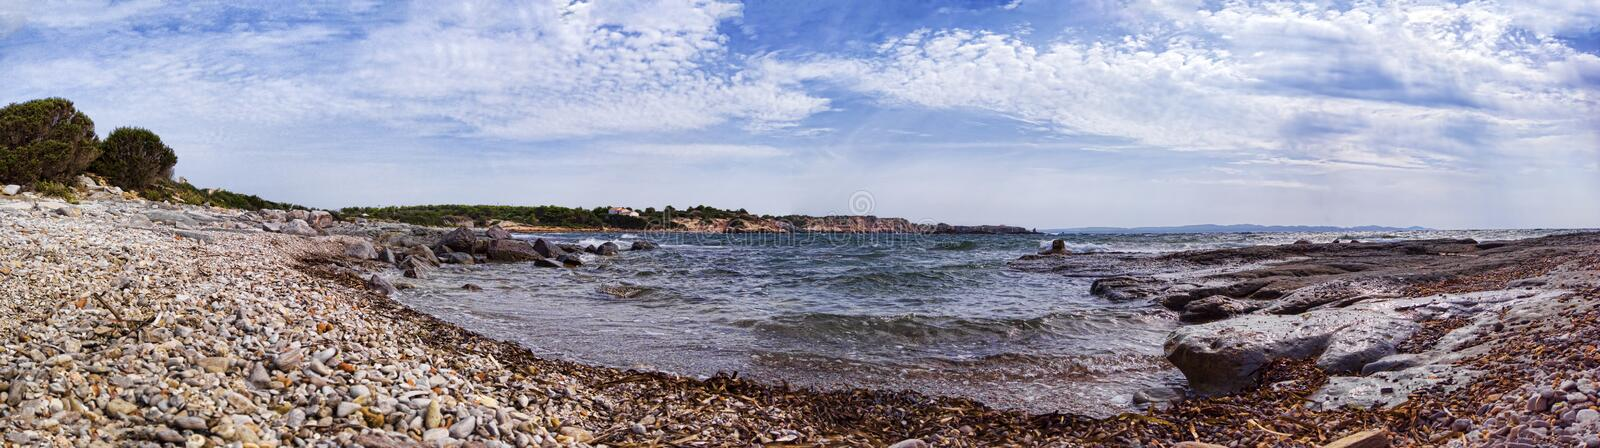 Striking 180 degree panoramic view at wilderness bay in Saint Peter island, rough sea with foam, pebbles beach with rocks smoothed. By the elements in a royalty free stock photo